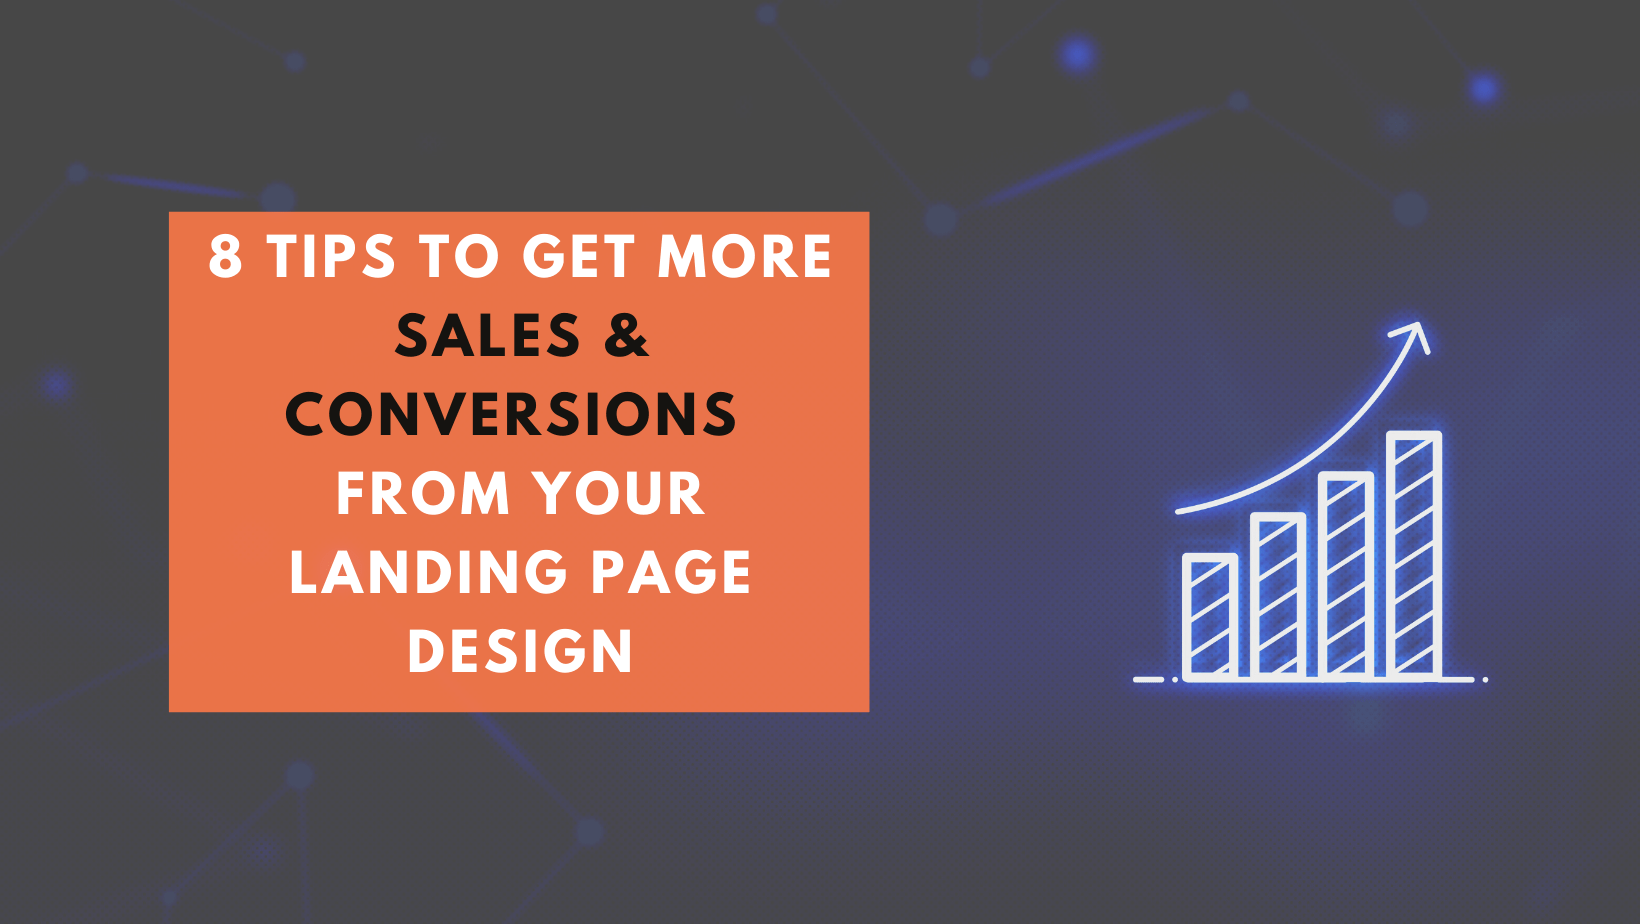 8 Tips to get more sales & conversions from your landing webpage design